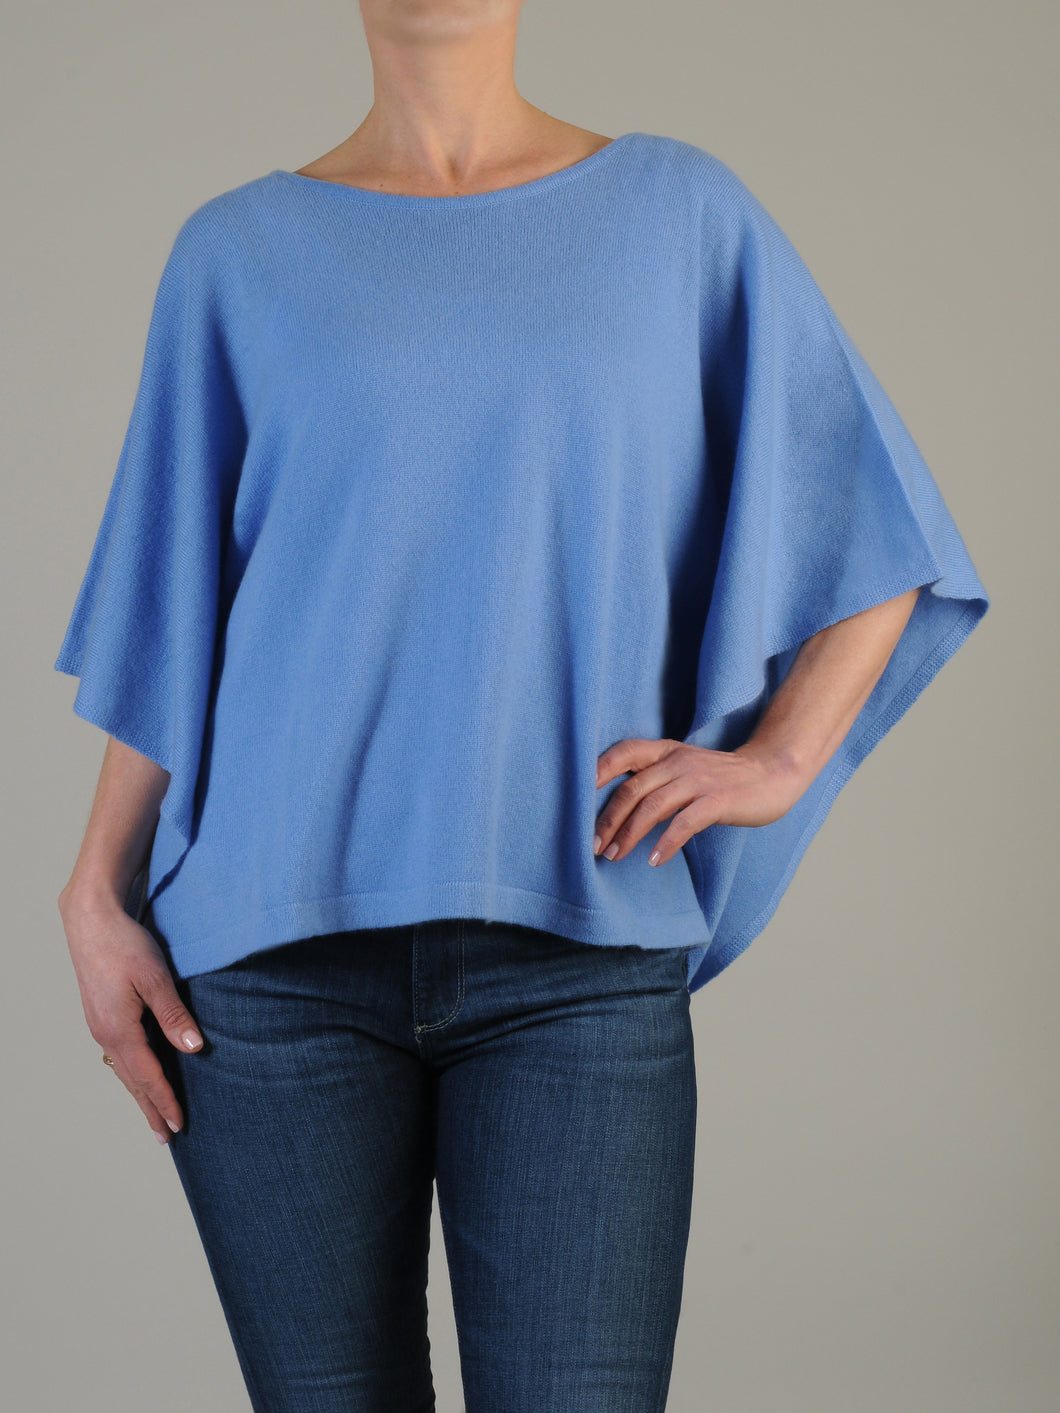 Cashmere Layla Cape | See More Colors Available